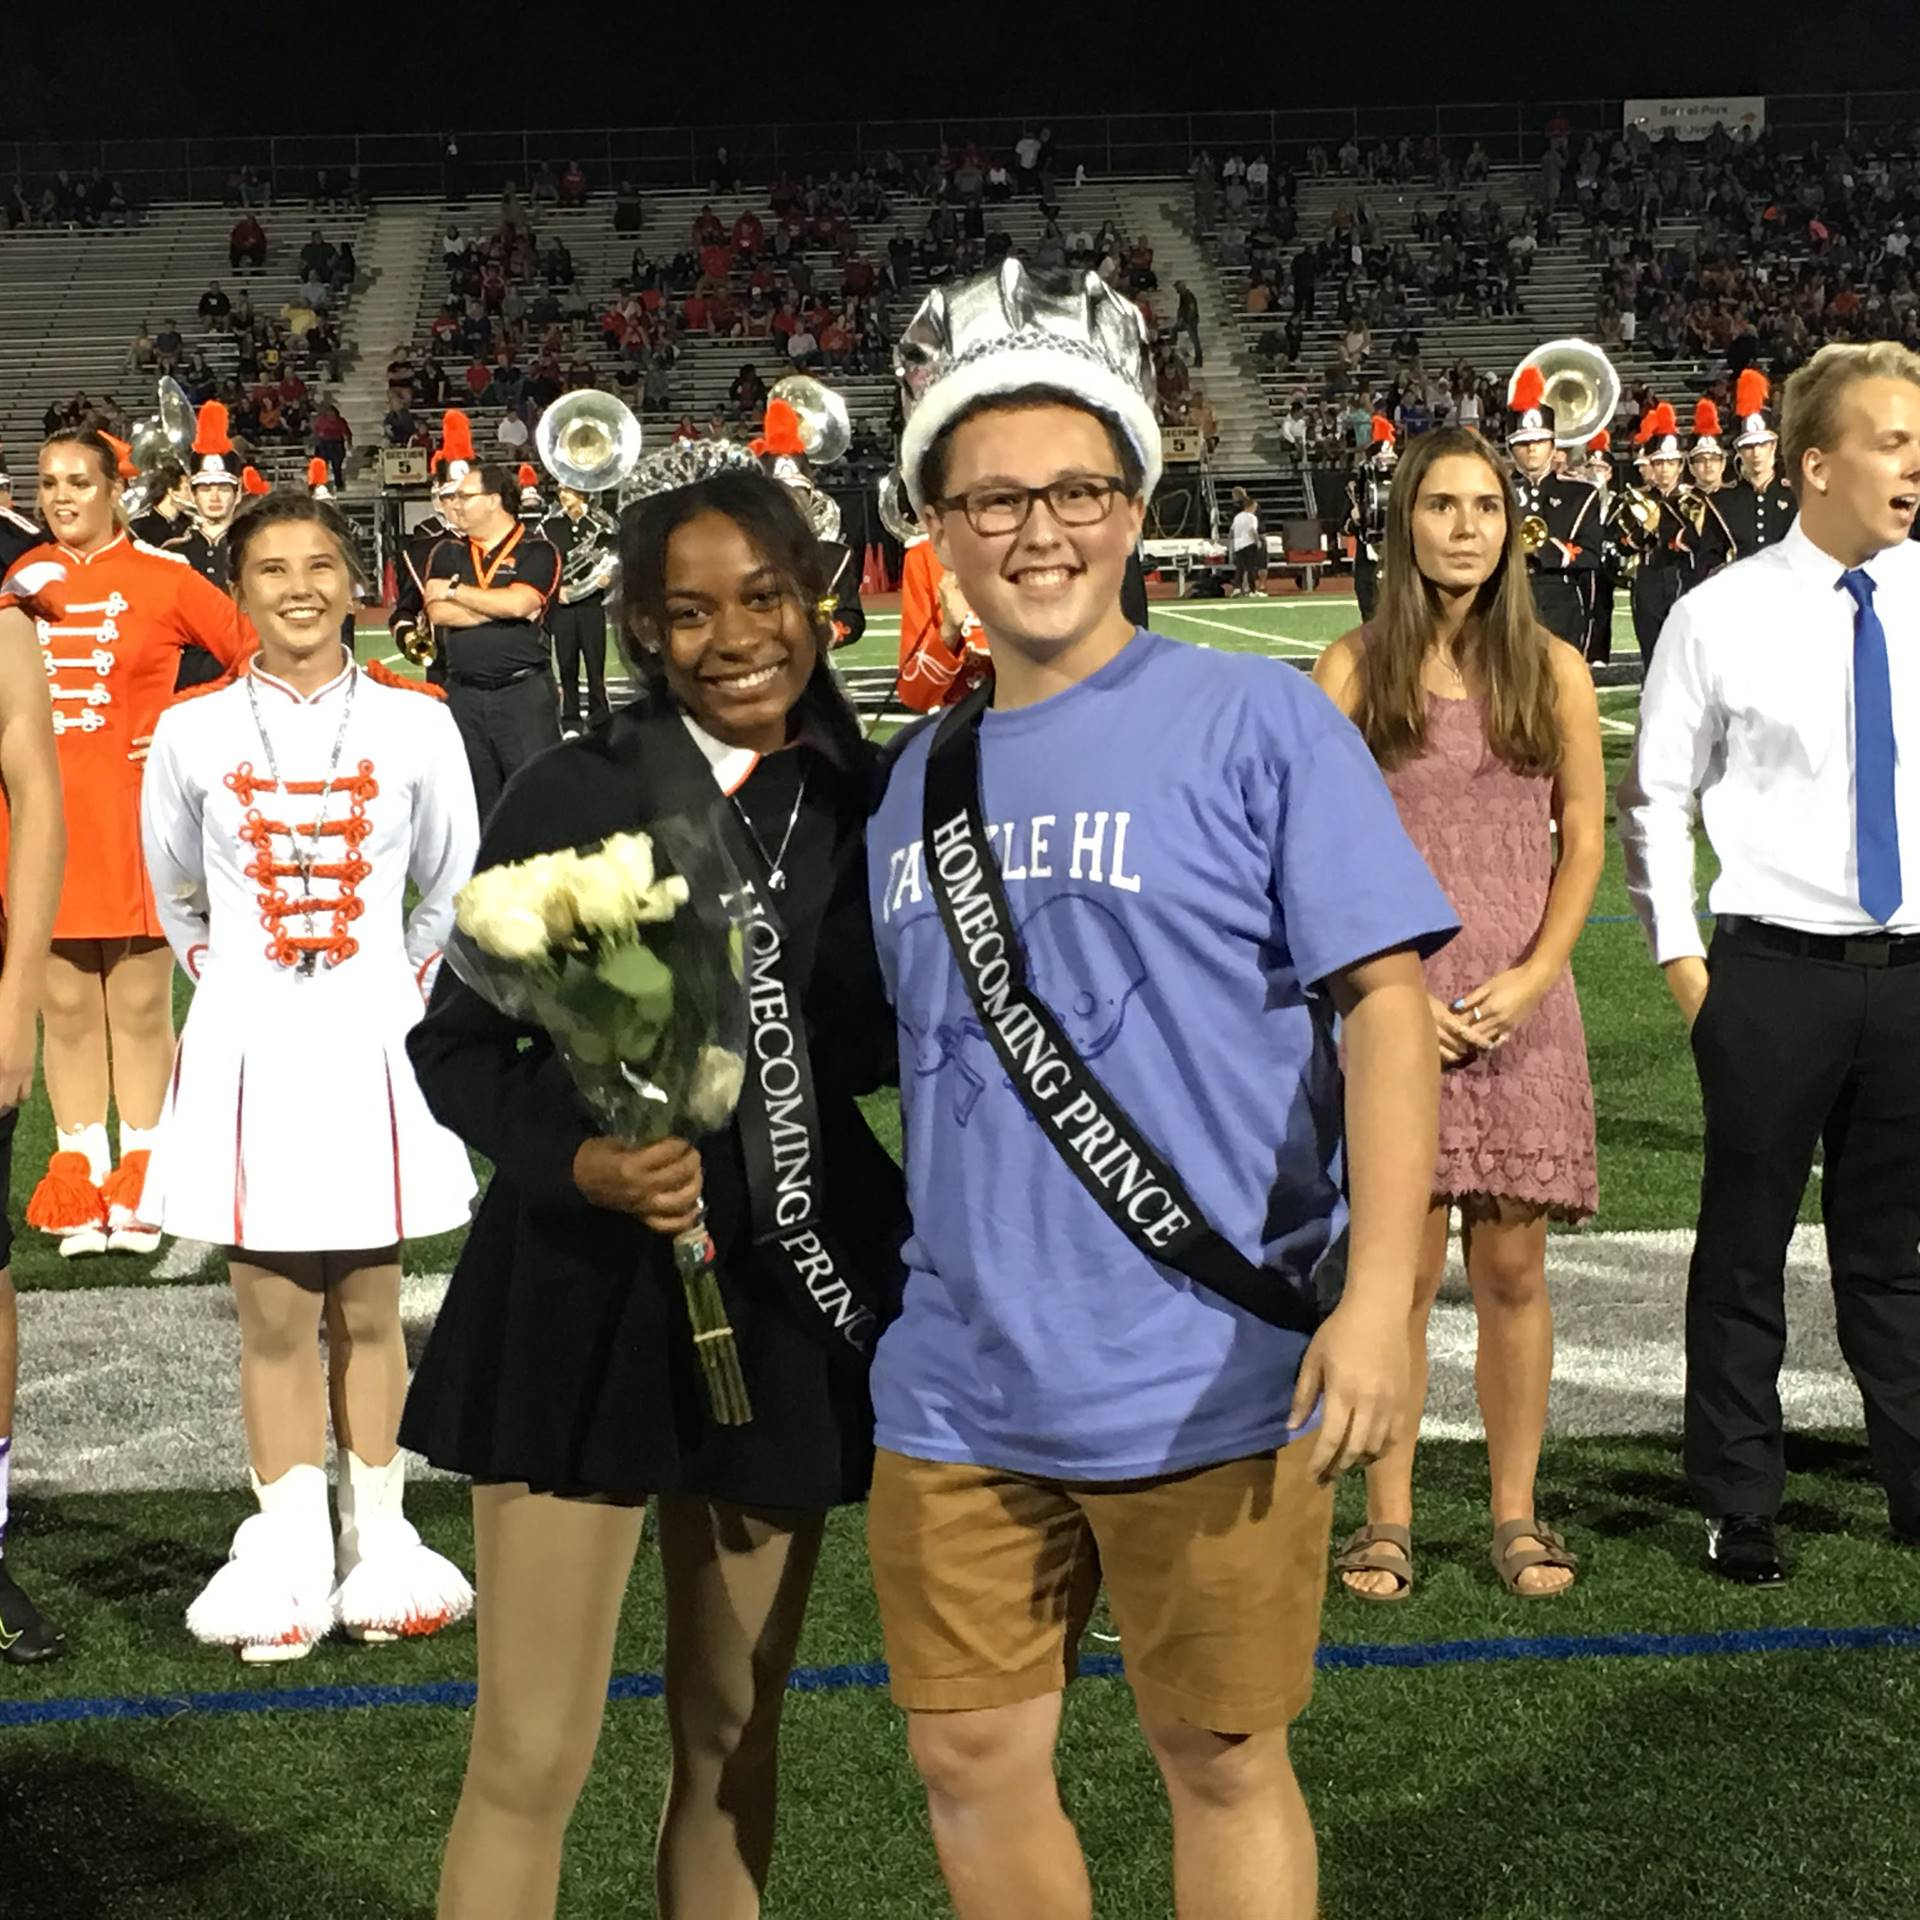 Homecoming Princess and Prince